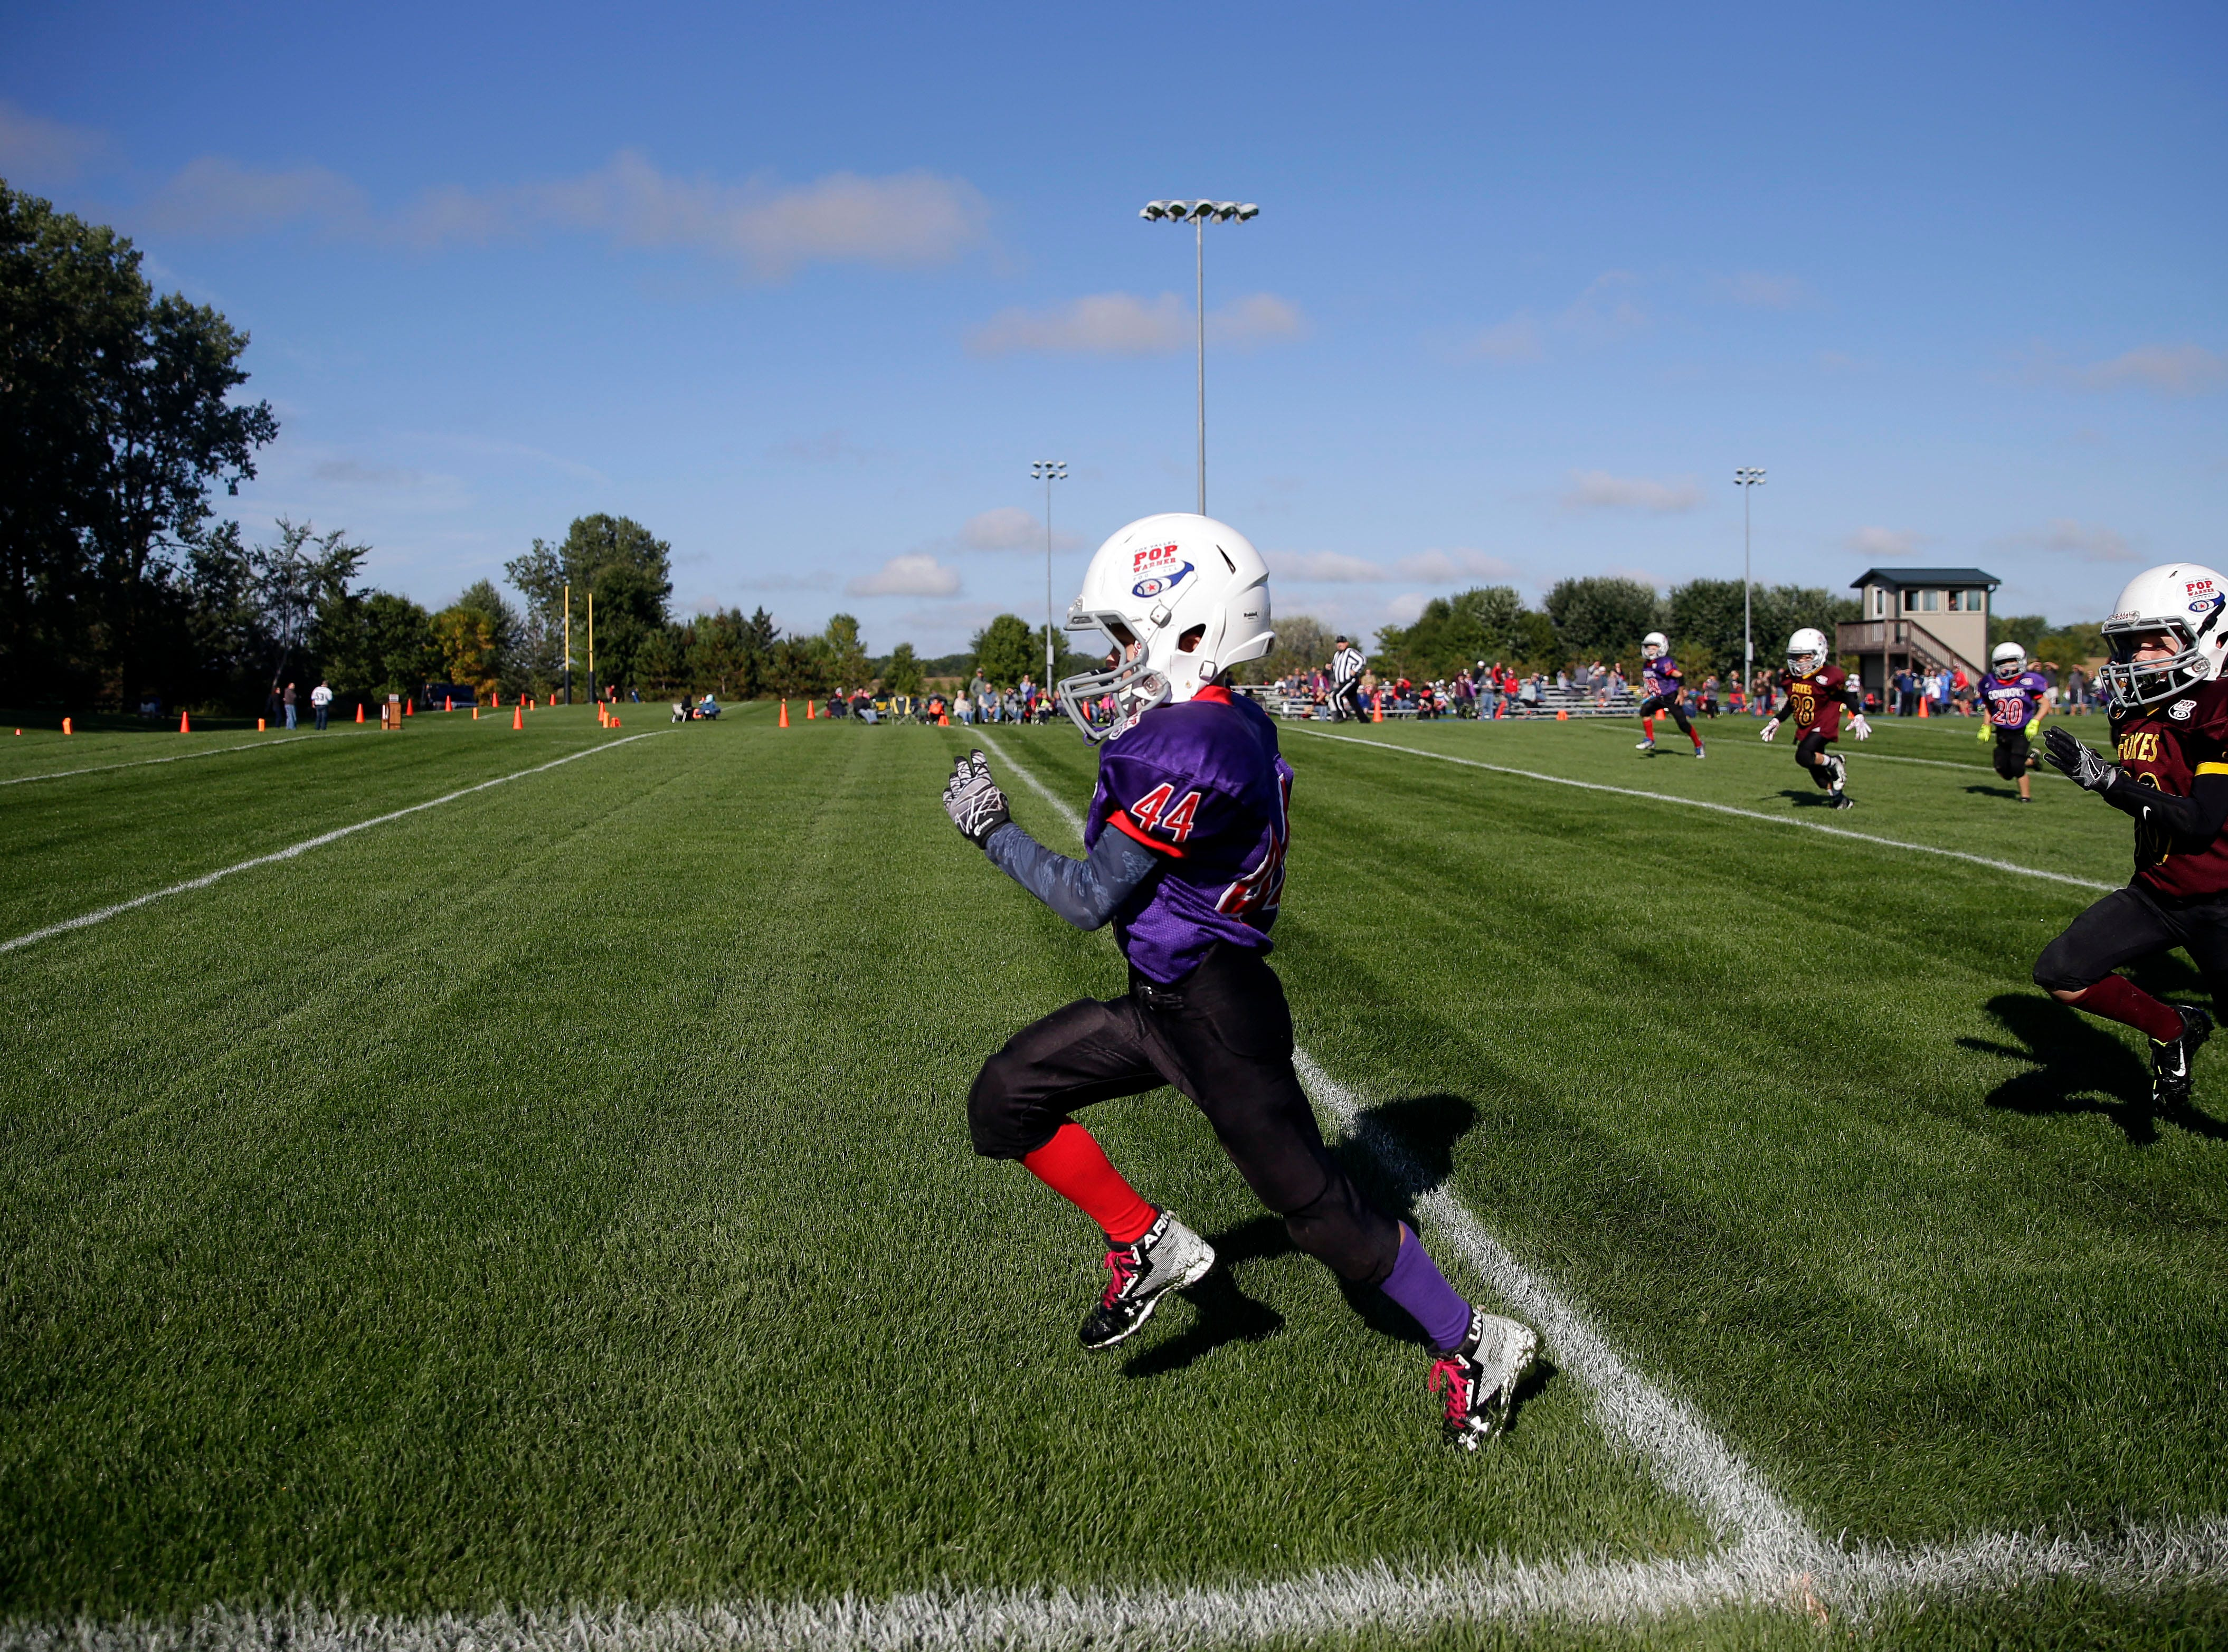 Carson Tylinski of the Cowboys runs for a touchdown that is called back as Fox Valley Pop Warner Football opens the season Saturday, September 8, 2018, at Plamann Park in Grand Chute, Wis.Ron Page/USA TODAY NETWORK-Wisconsin